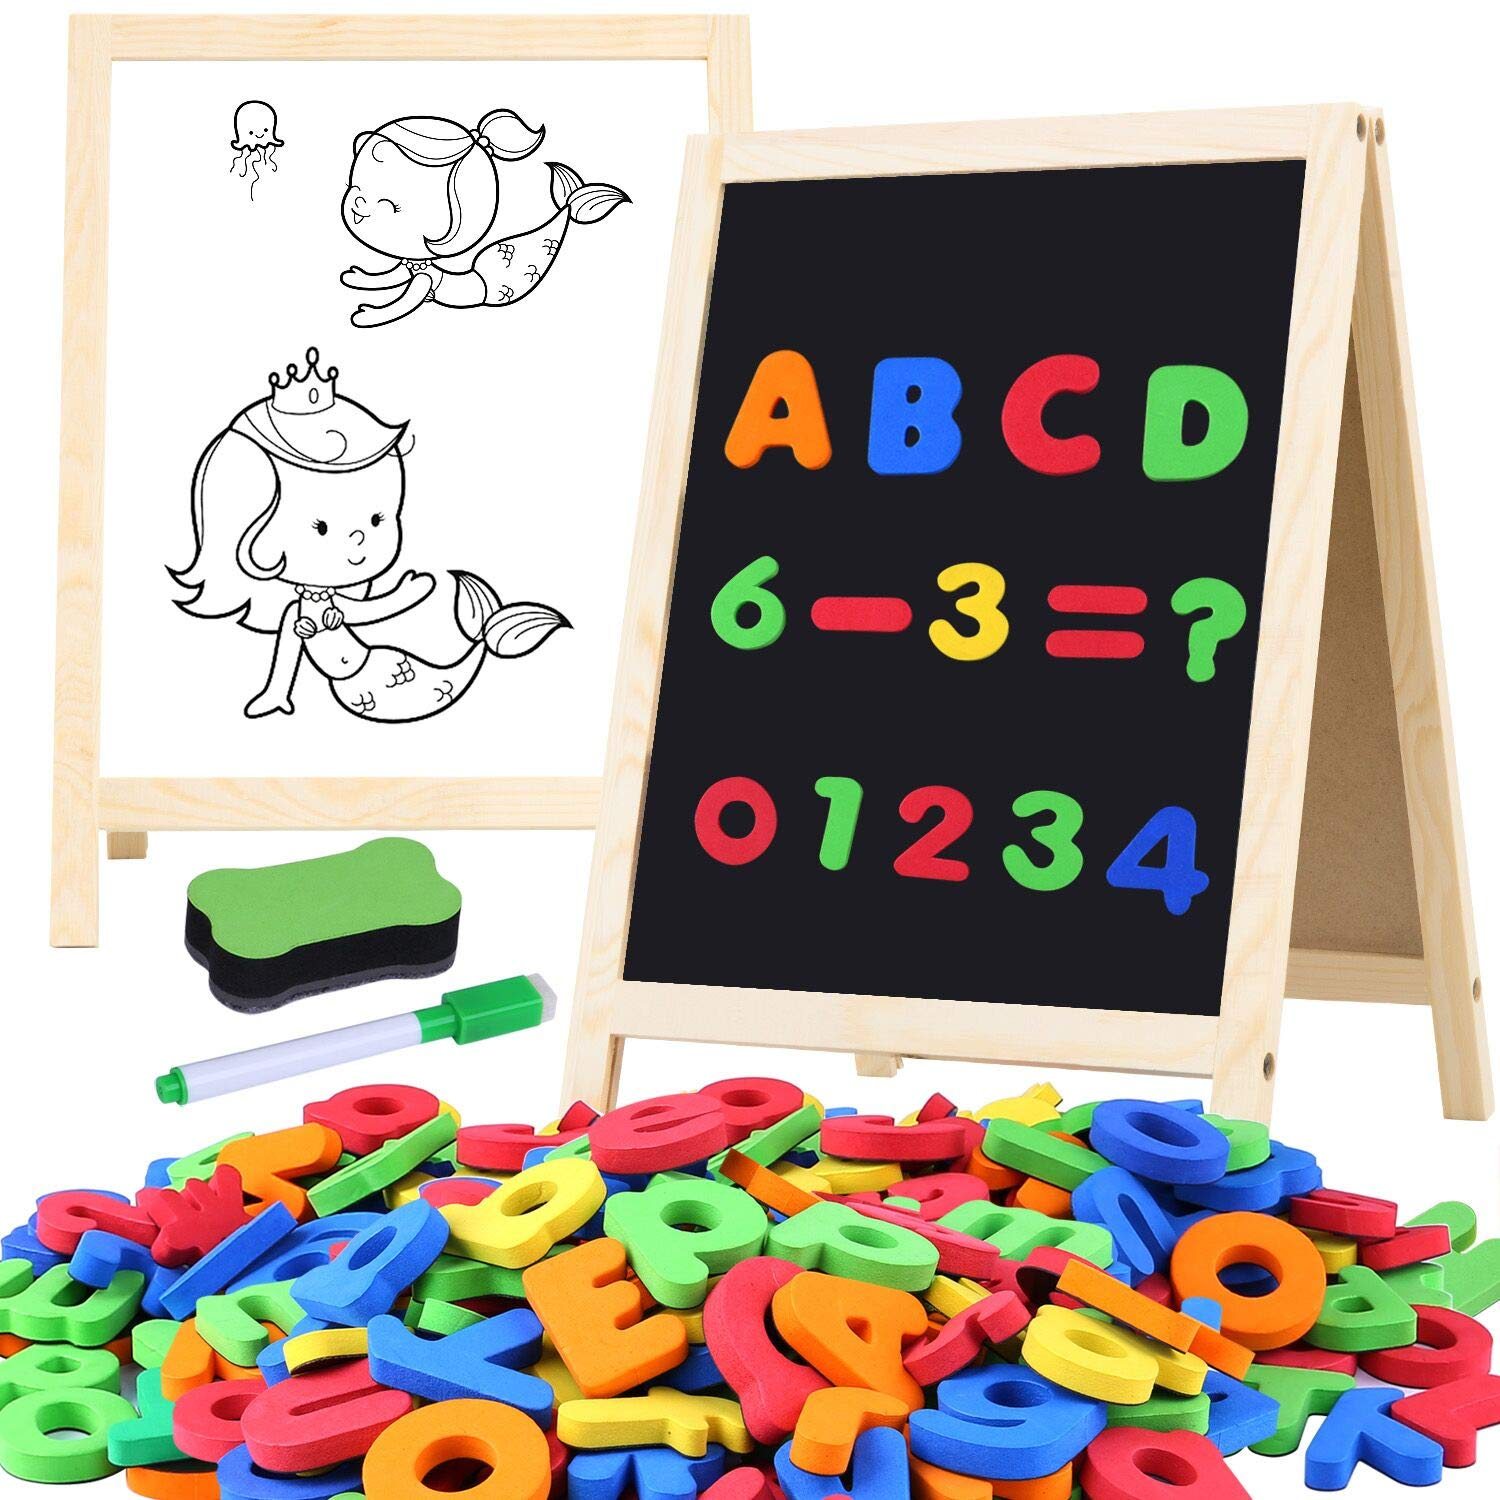 GINMIC Magnetic Letters and Numbers with Easel for Kids/Toddlers, Magnetic Whiteboard & Chalkboard w/Dry Erase Markers, ABC Megnets Alphabet Letters Learning Set, Classroom Home Education Toys by GINMIC